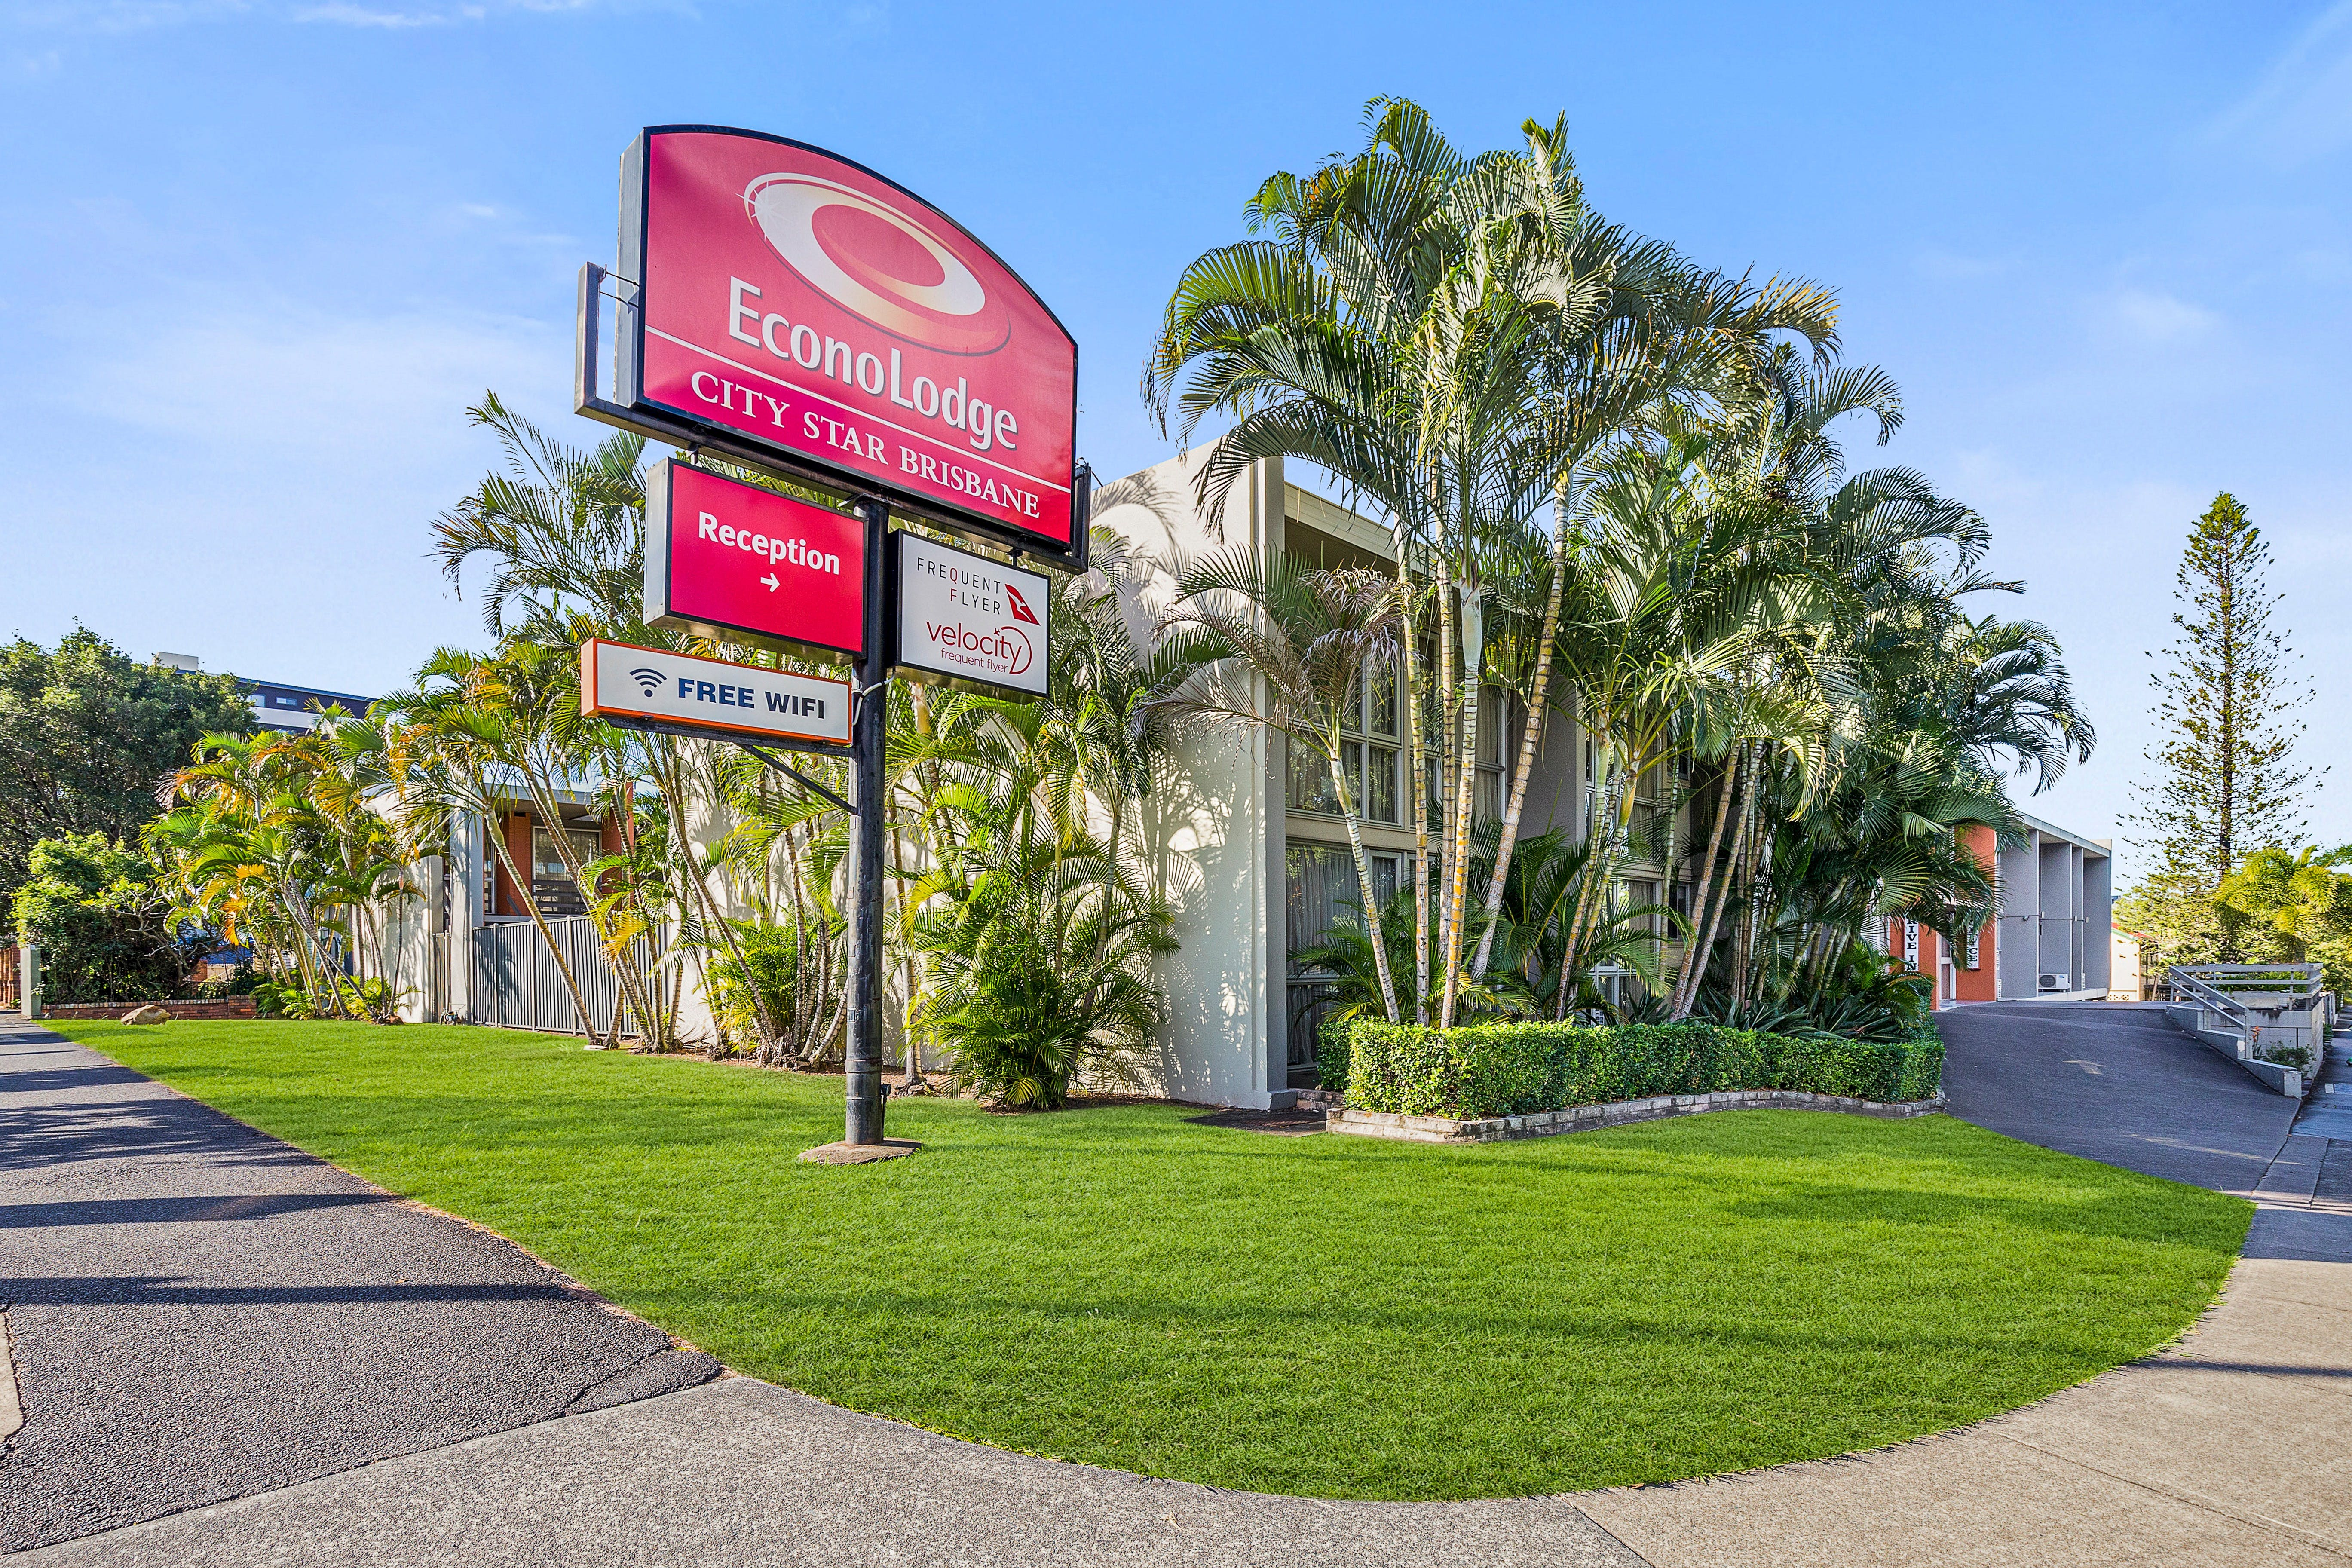 Econo Lodge City Star Brisbane - Accommodation Adelaide